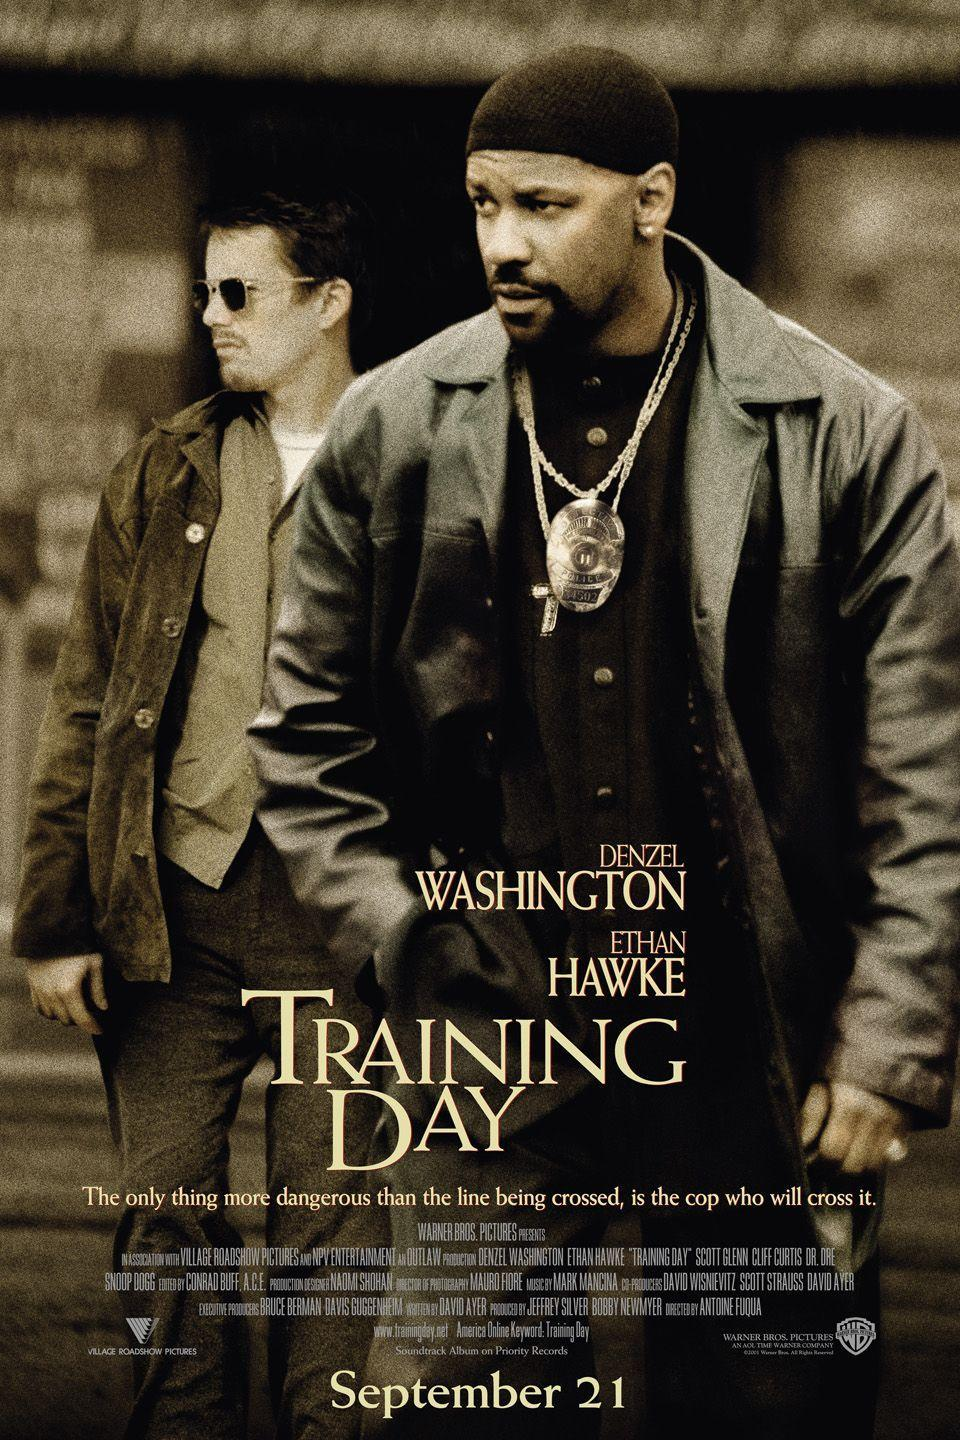 <p>Released on October 5, 2001, Training Day's depiction of a rookie cop in the LAPD is far too relevant today. Denzel Washington won the Academy Award for Best Actor for his role. He was supported in good company by Ethan Hawke and Eva Mendes.</p>